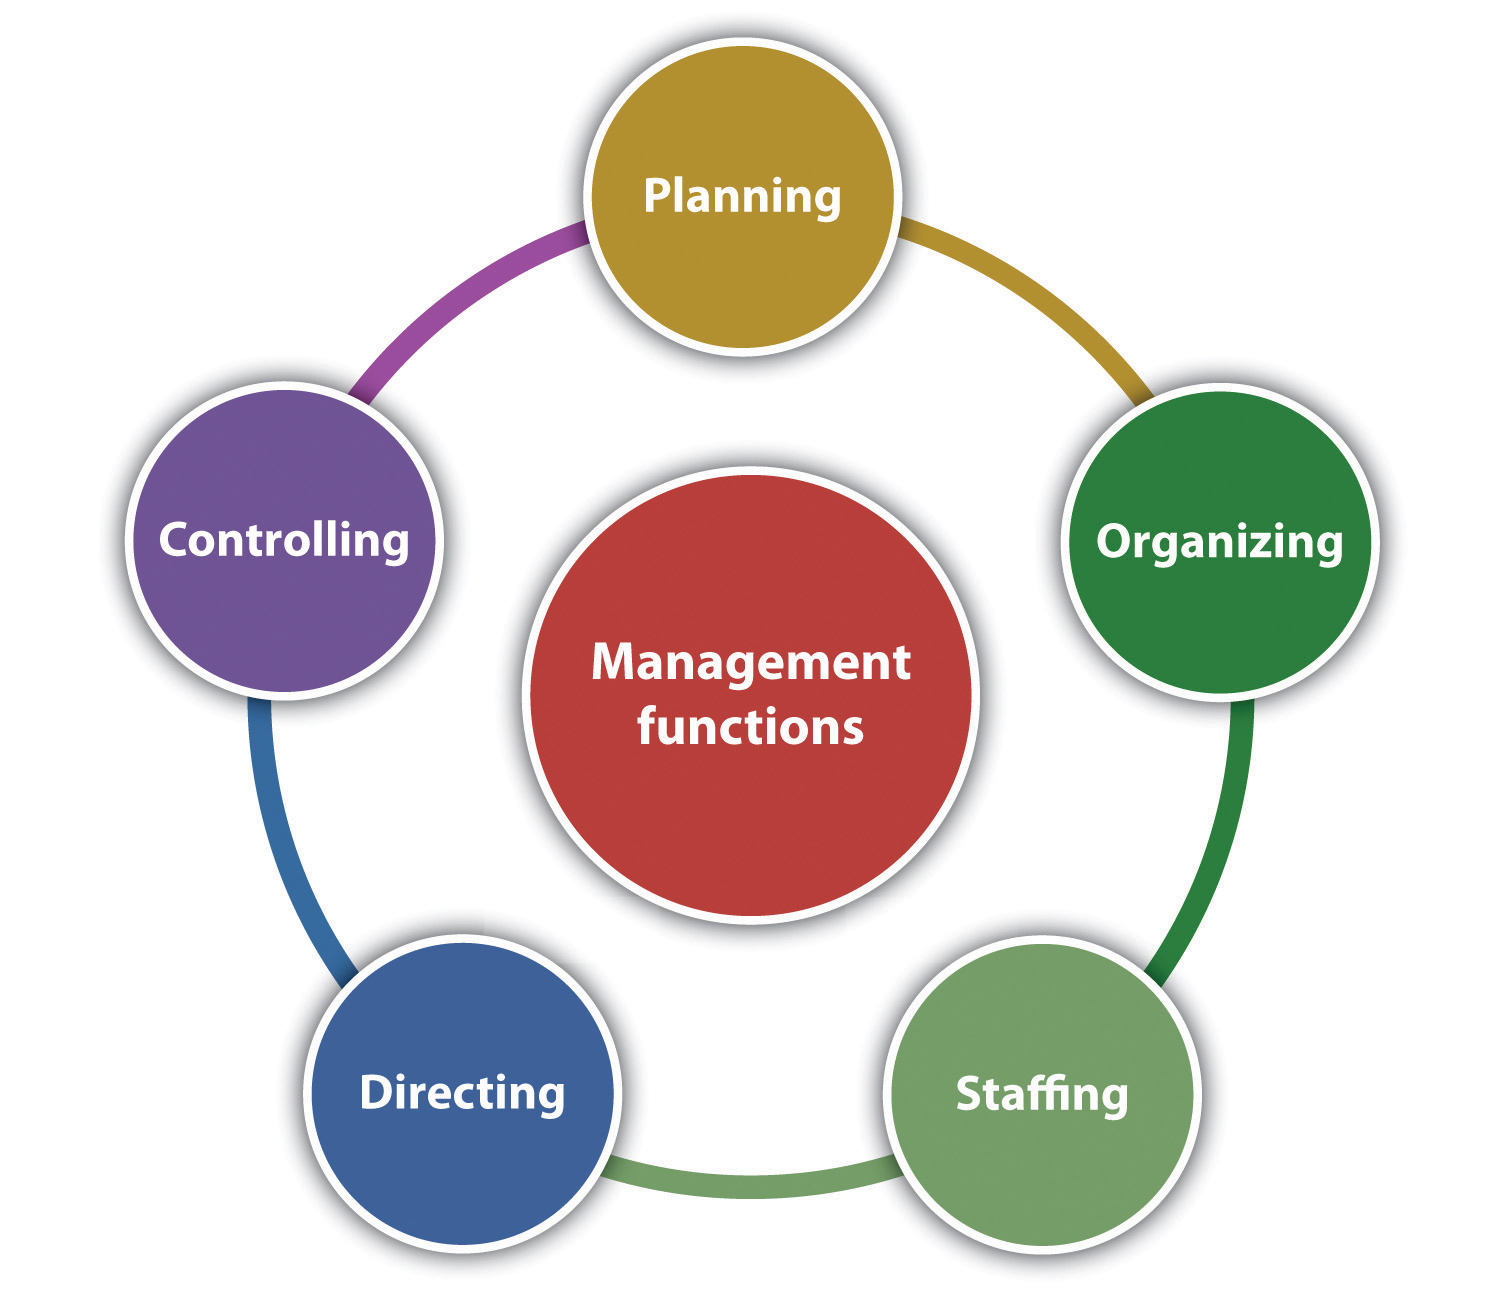 management function of pran Assignment: 3-1:submission - answer the following of questions: 1- describe the function of planning and its importance in the strategic management process.